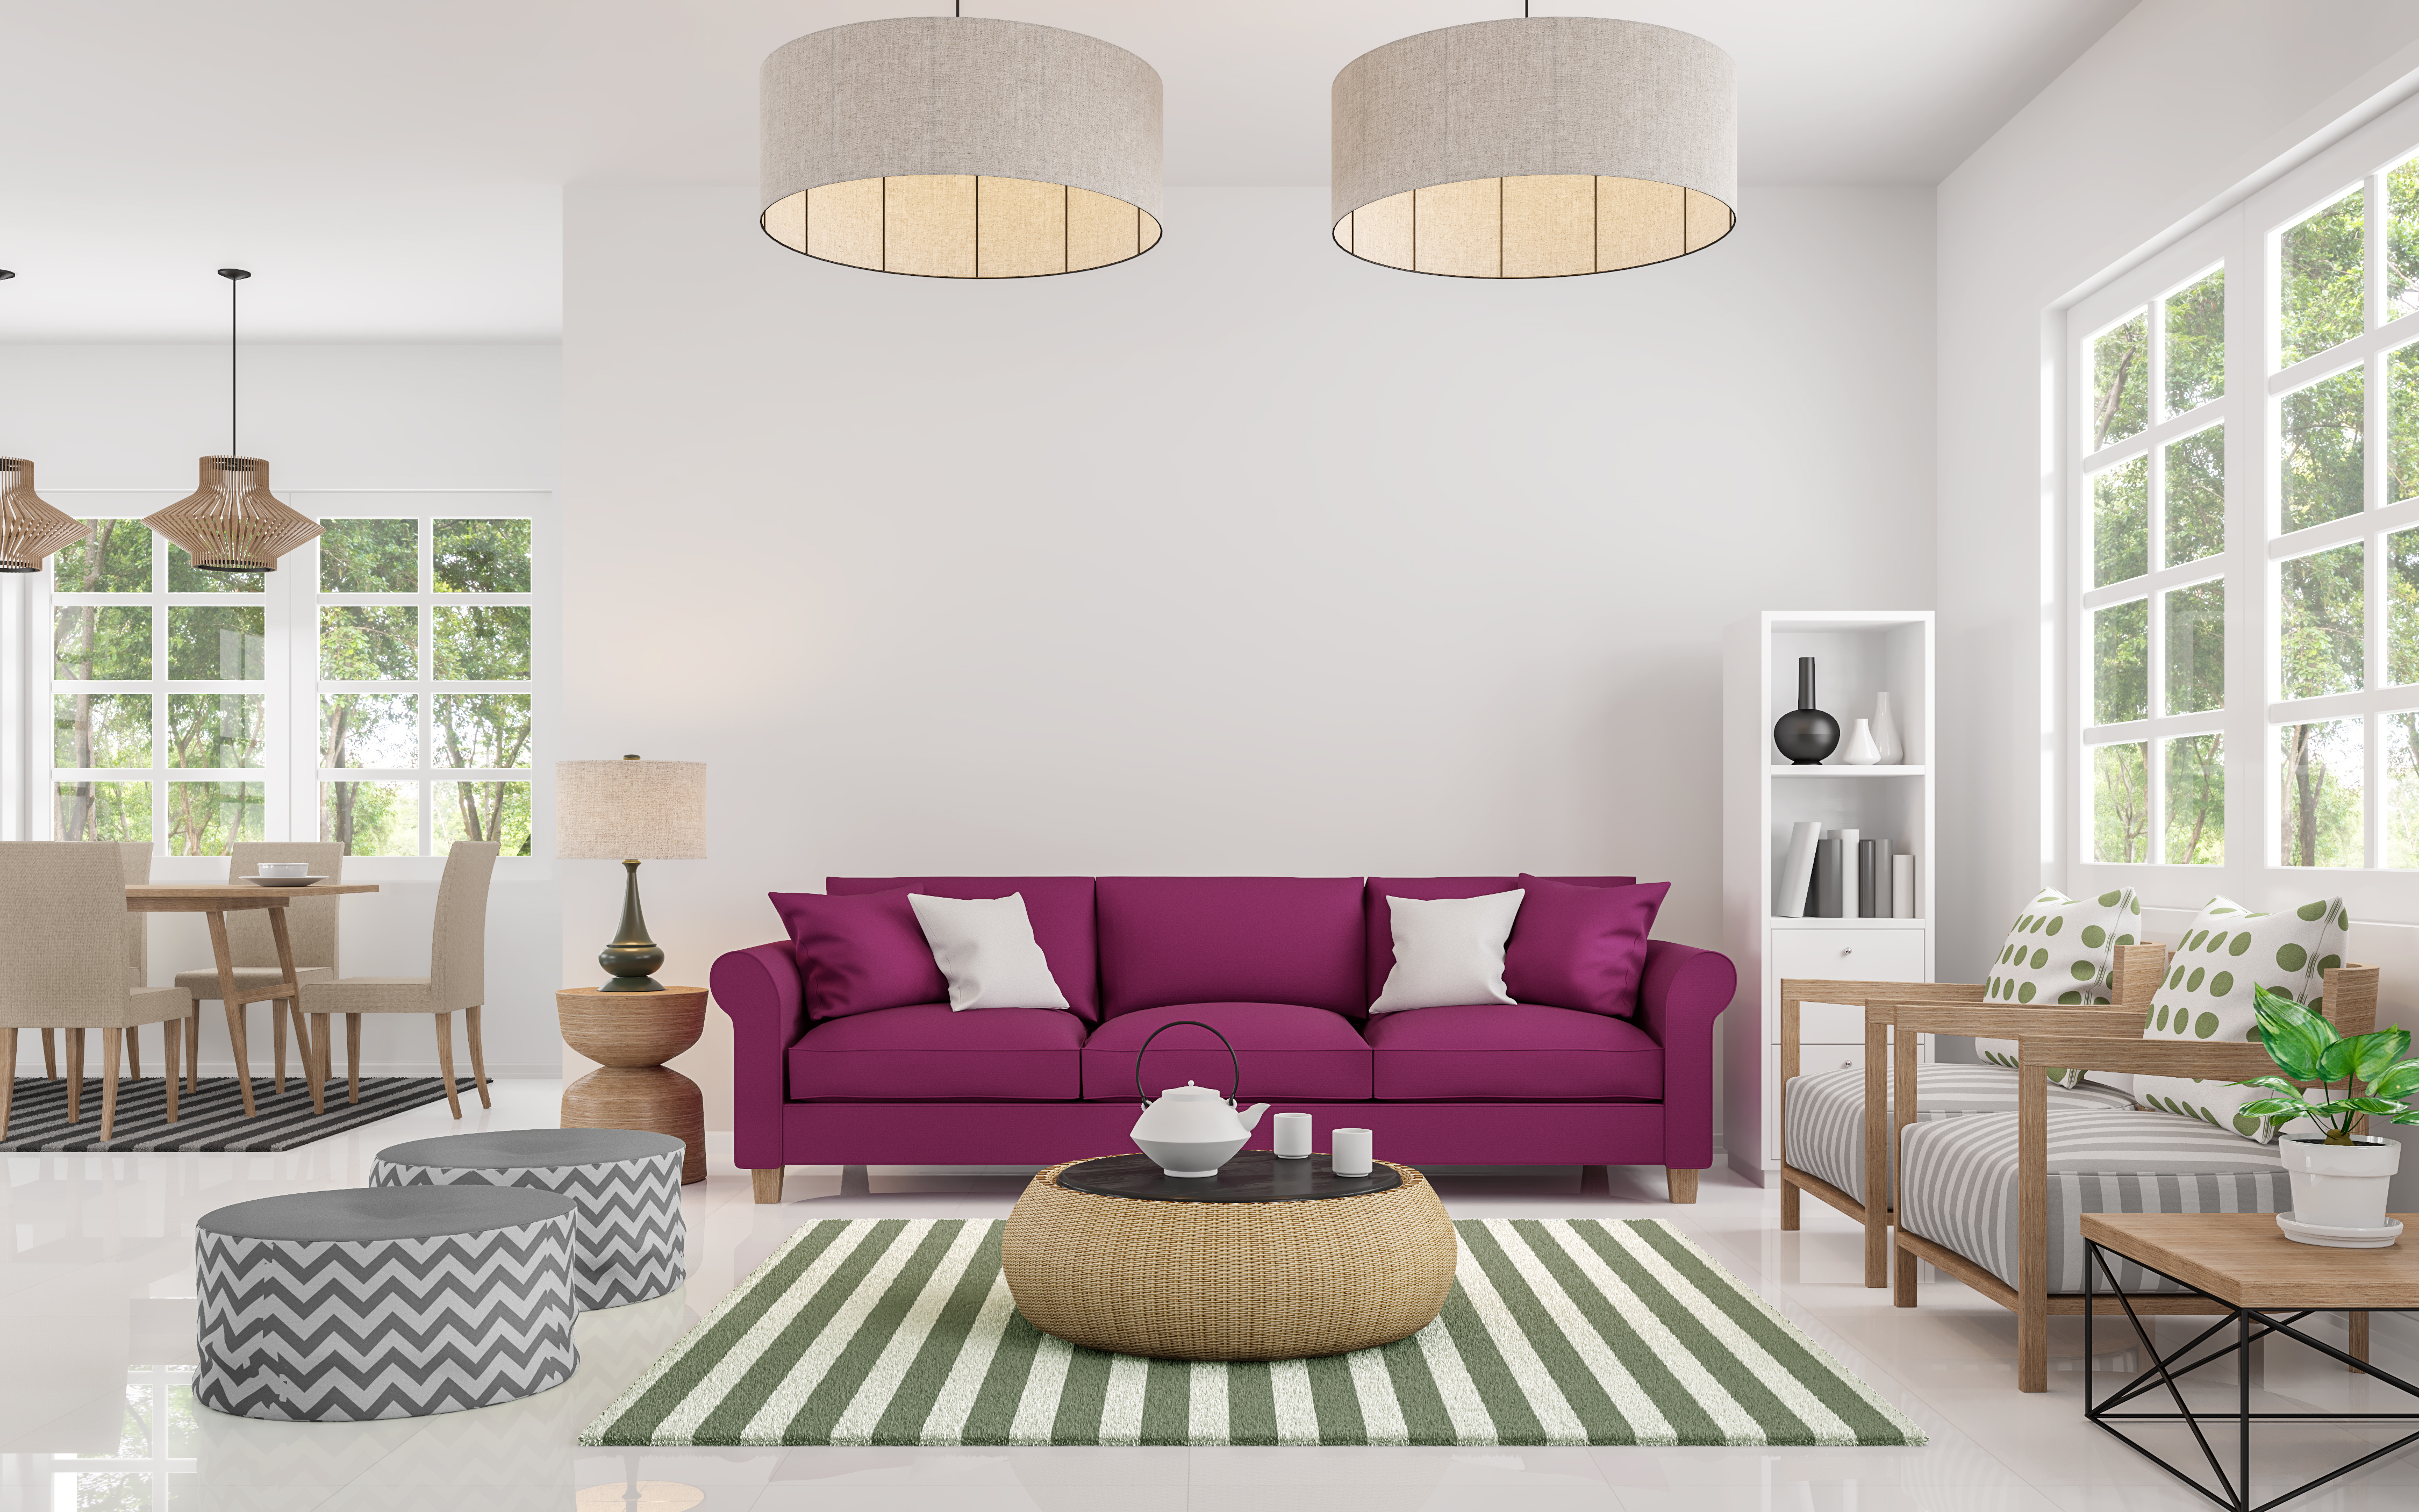 Blank canvas interior design style